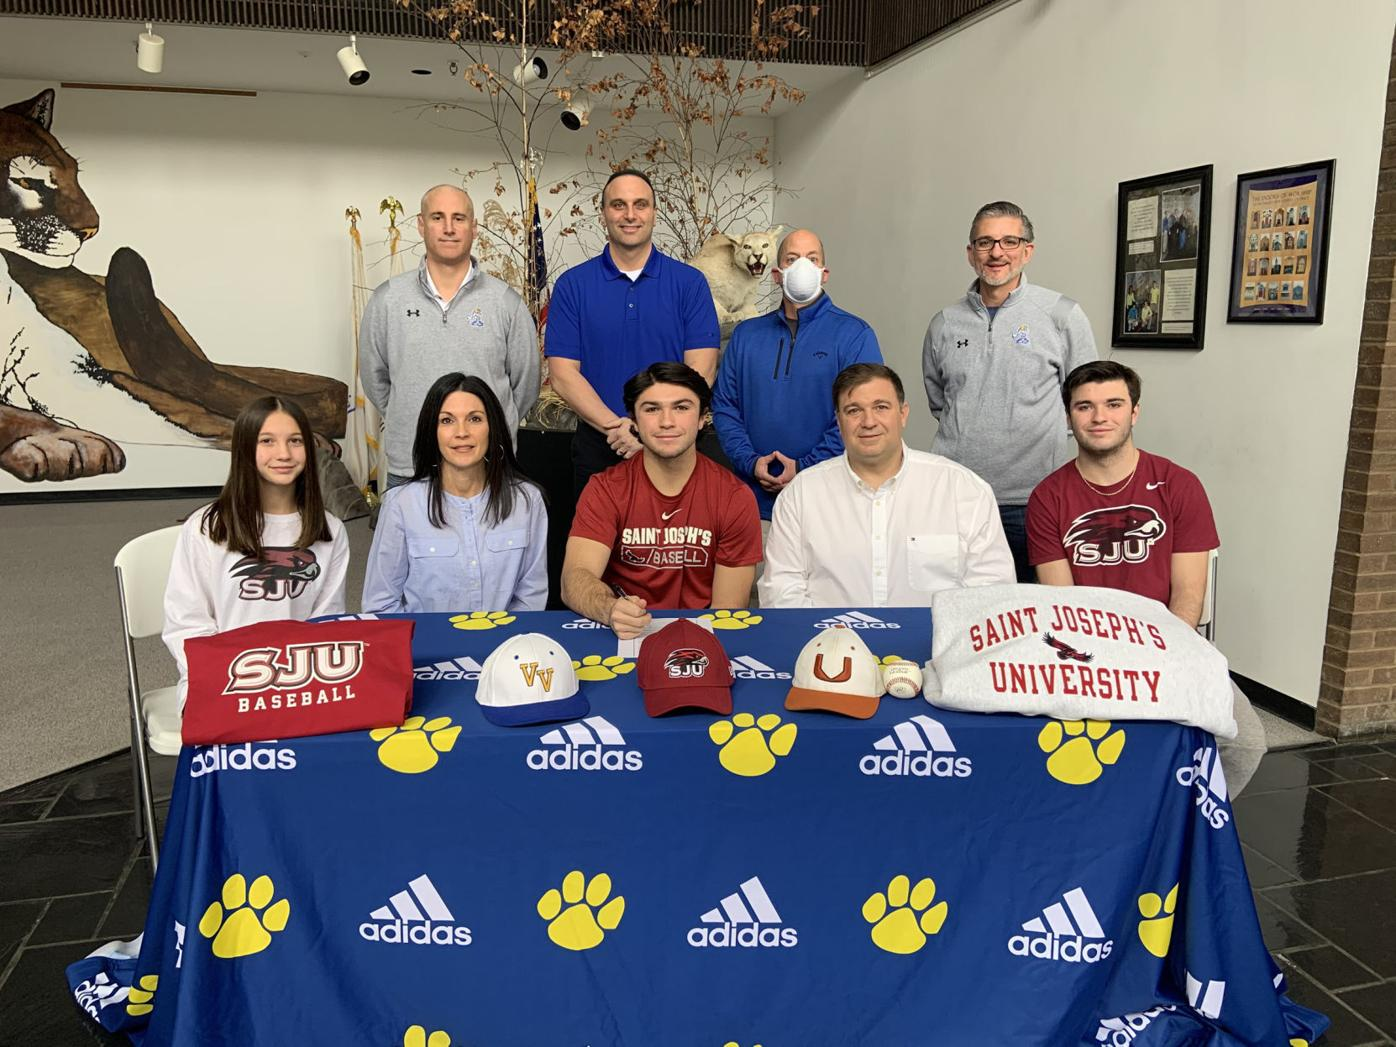 Valley View students earn baseball scholarships